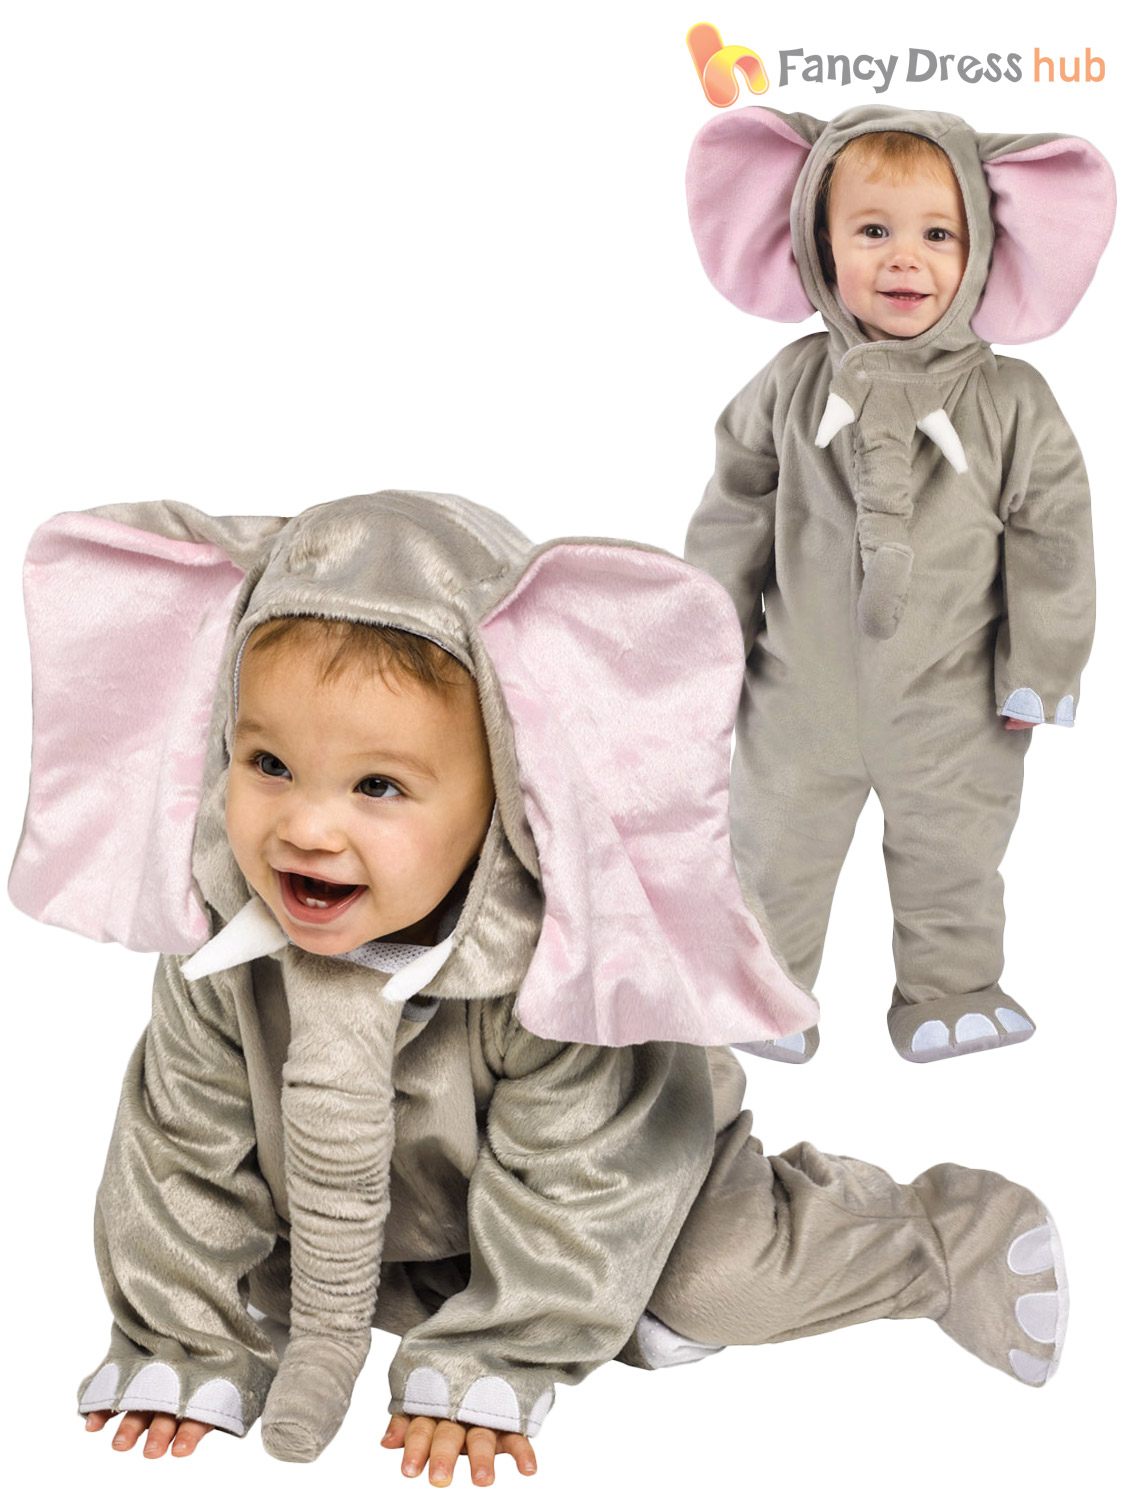 We stock a large range of baby fancy dress months costumes. We featuring baby costumes in many styles including animals, fairies, Christmas and Halloween costumes. Make timetodressup your go to shop for baby fancy dress months.